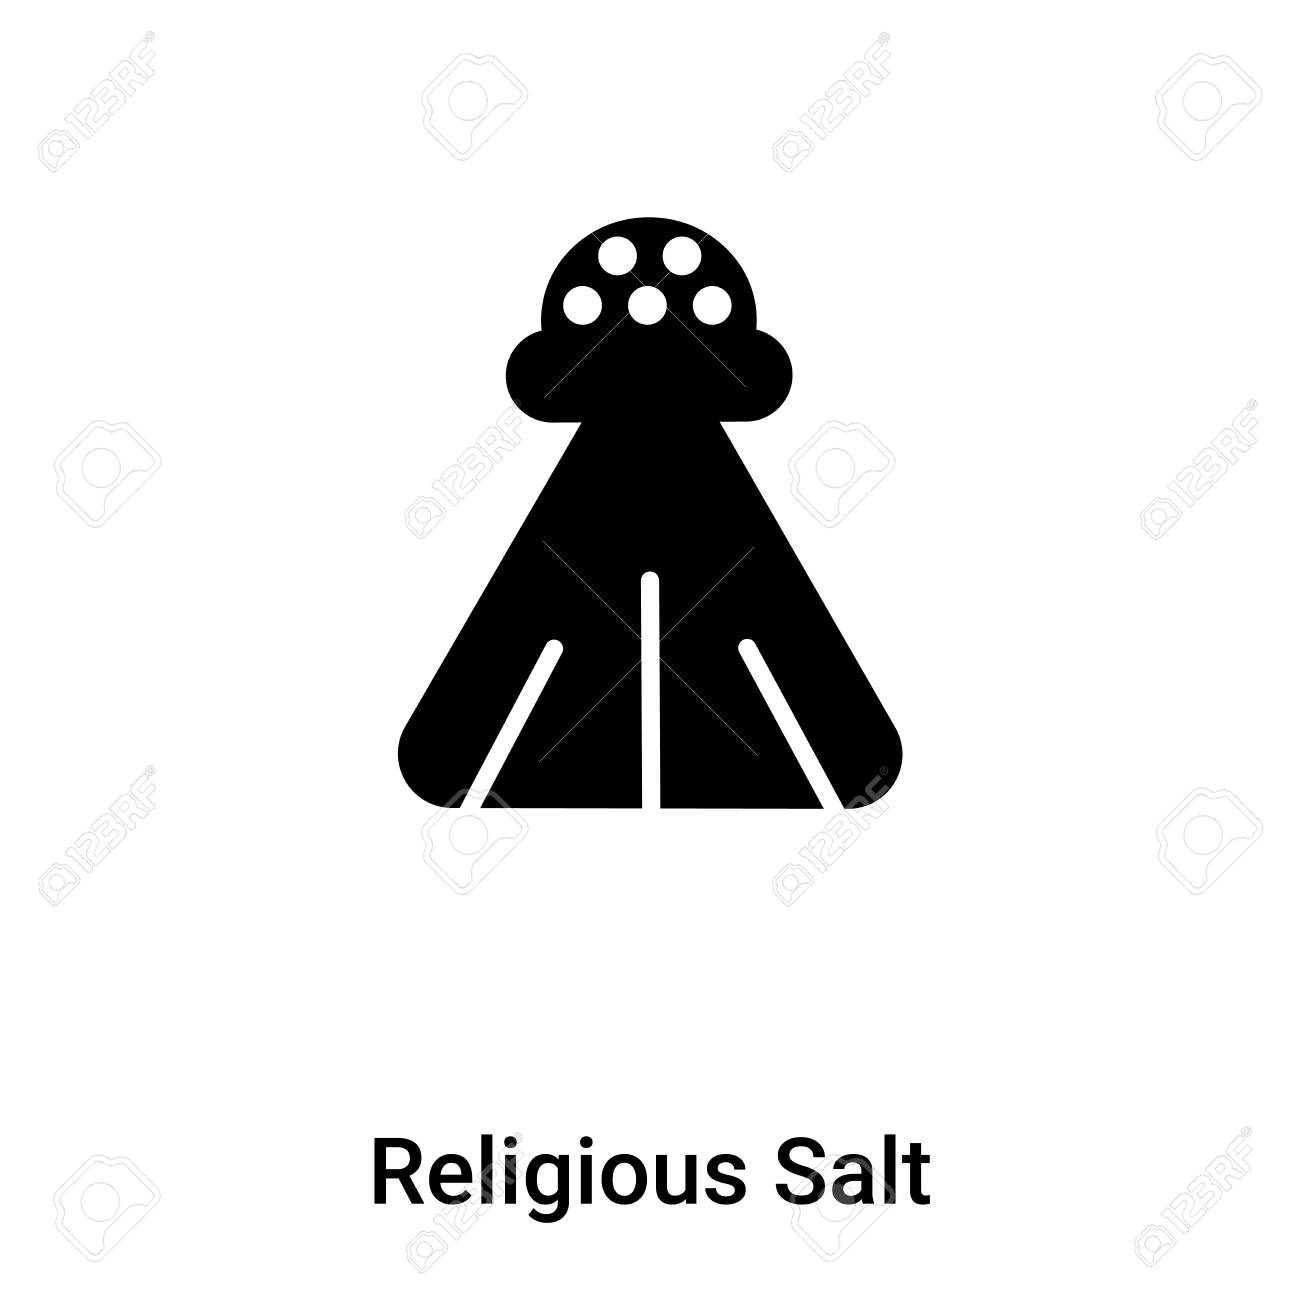 Religious Salt icon vector isolated on white background, concept of Religious Salt sign on transparent background, filled black symbol - 108636433